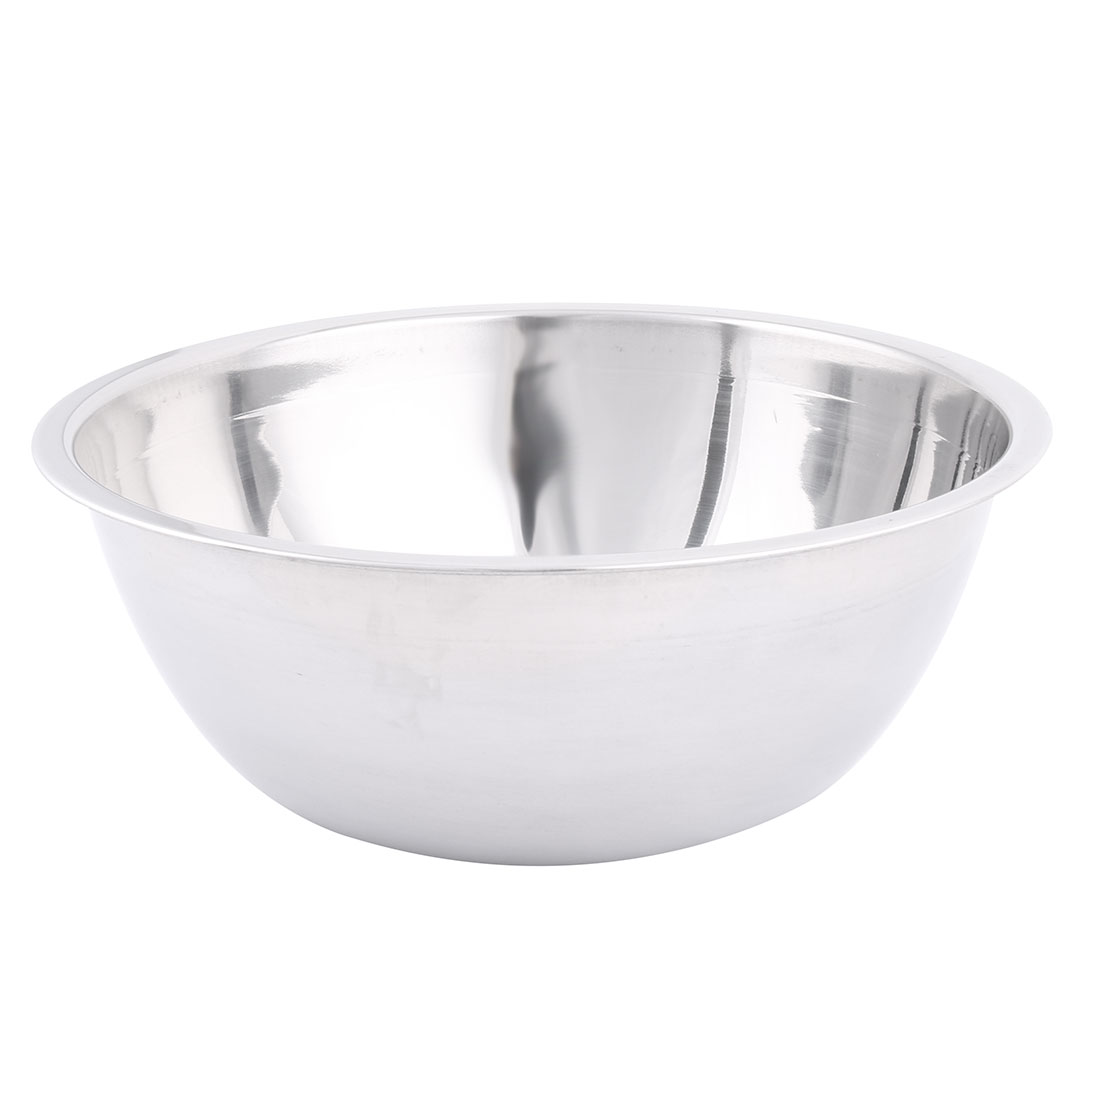 Kitchen Stainless Steel Food Vegetable Salad Noodle Mixing Bowl Container 27.5cm Diameter